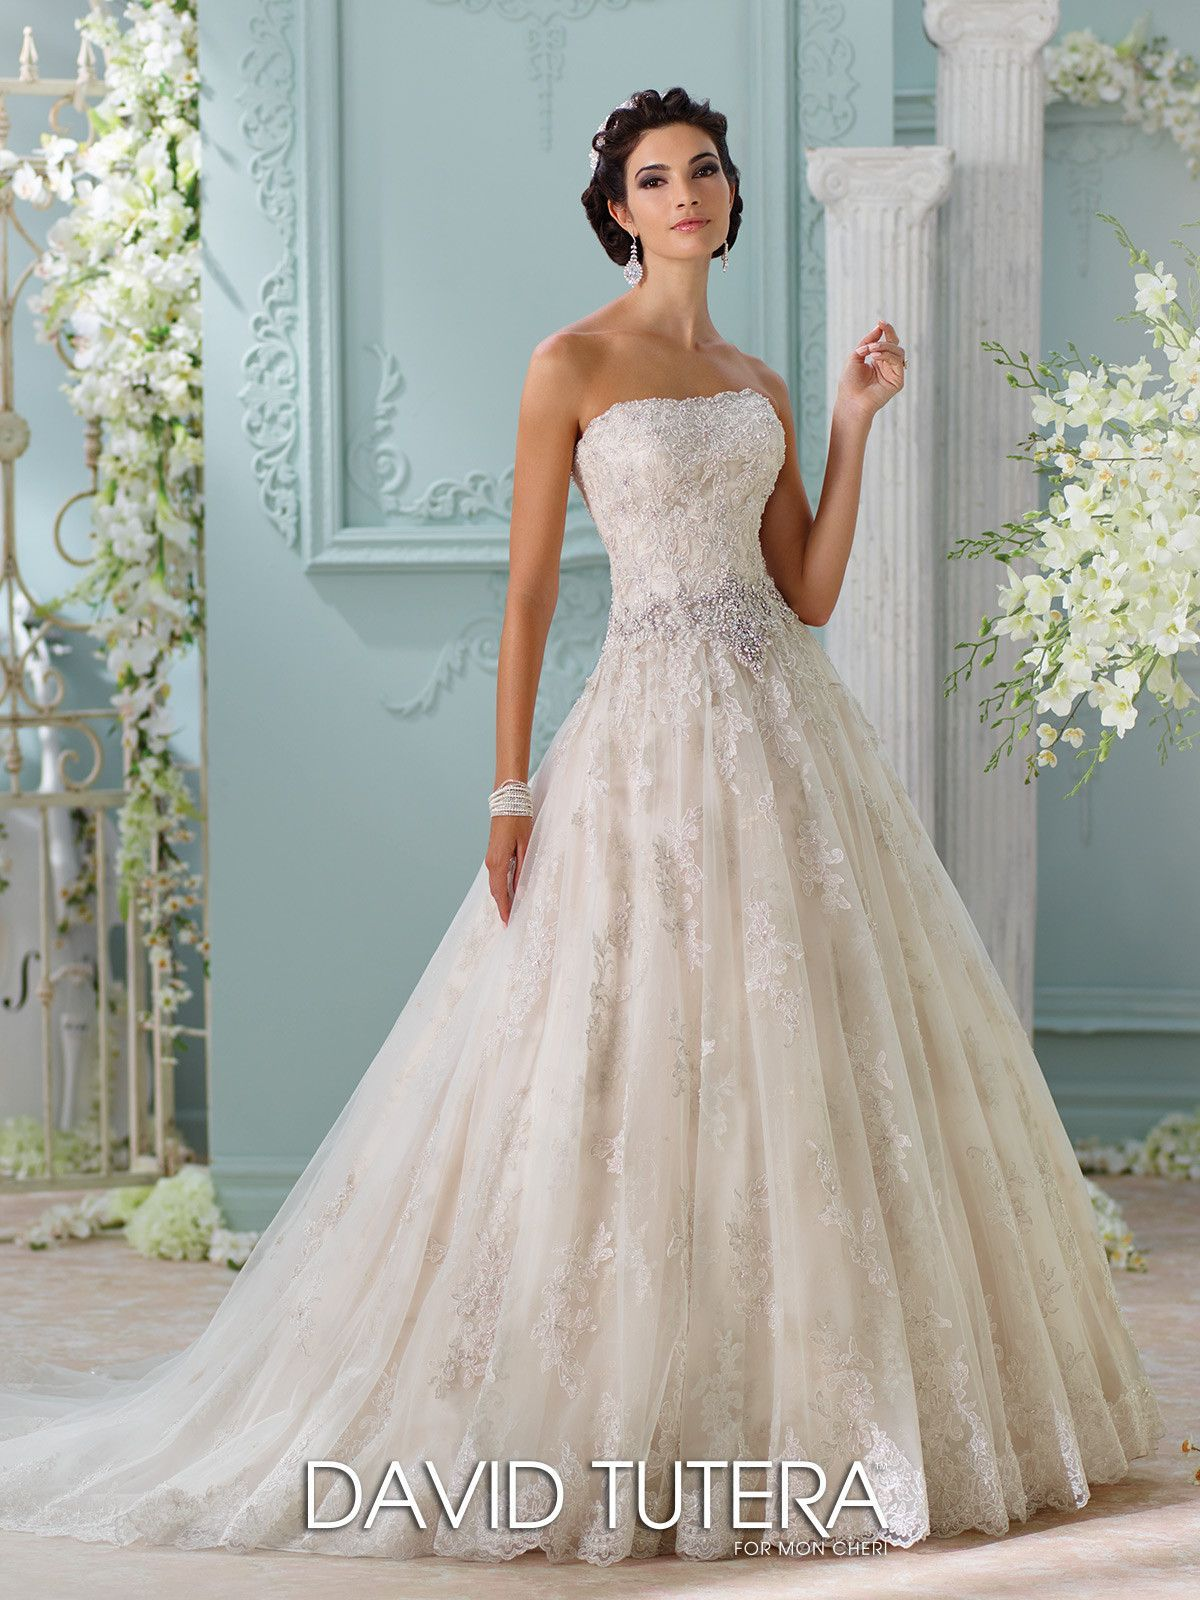 David Tutera Couture - Jelena - 116230 - All Dressed Up, Bridal Gown ...